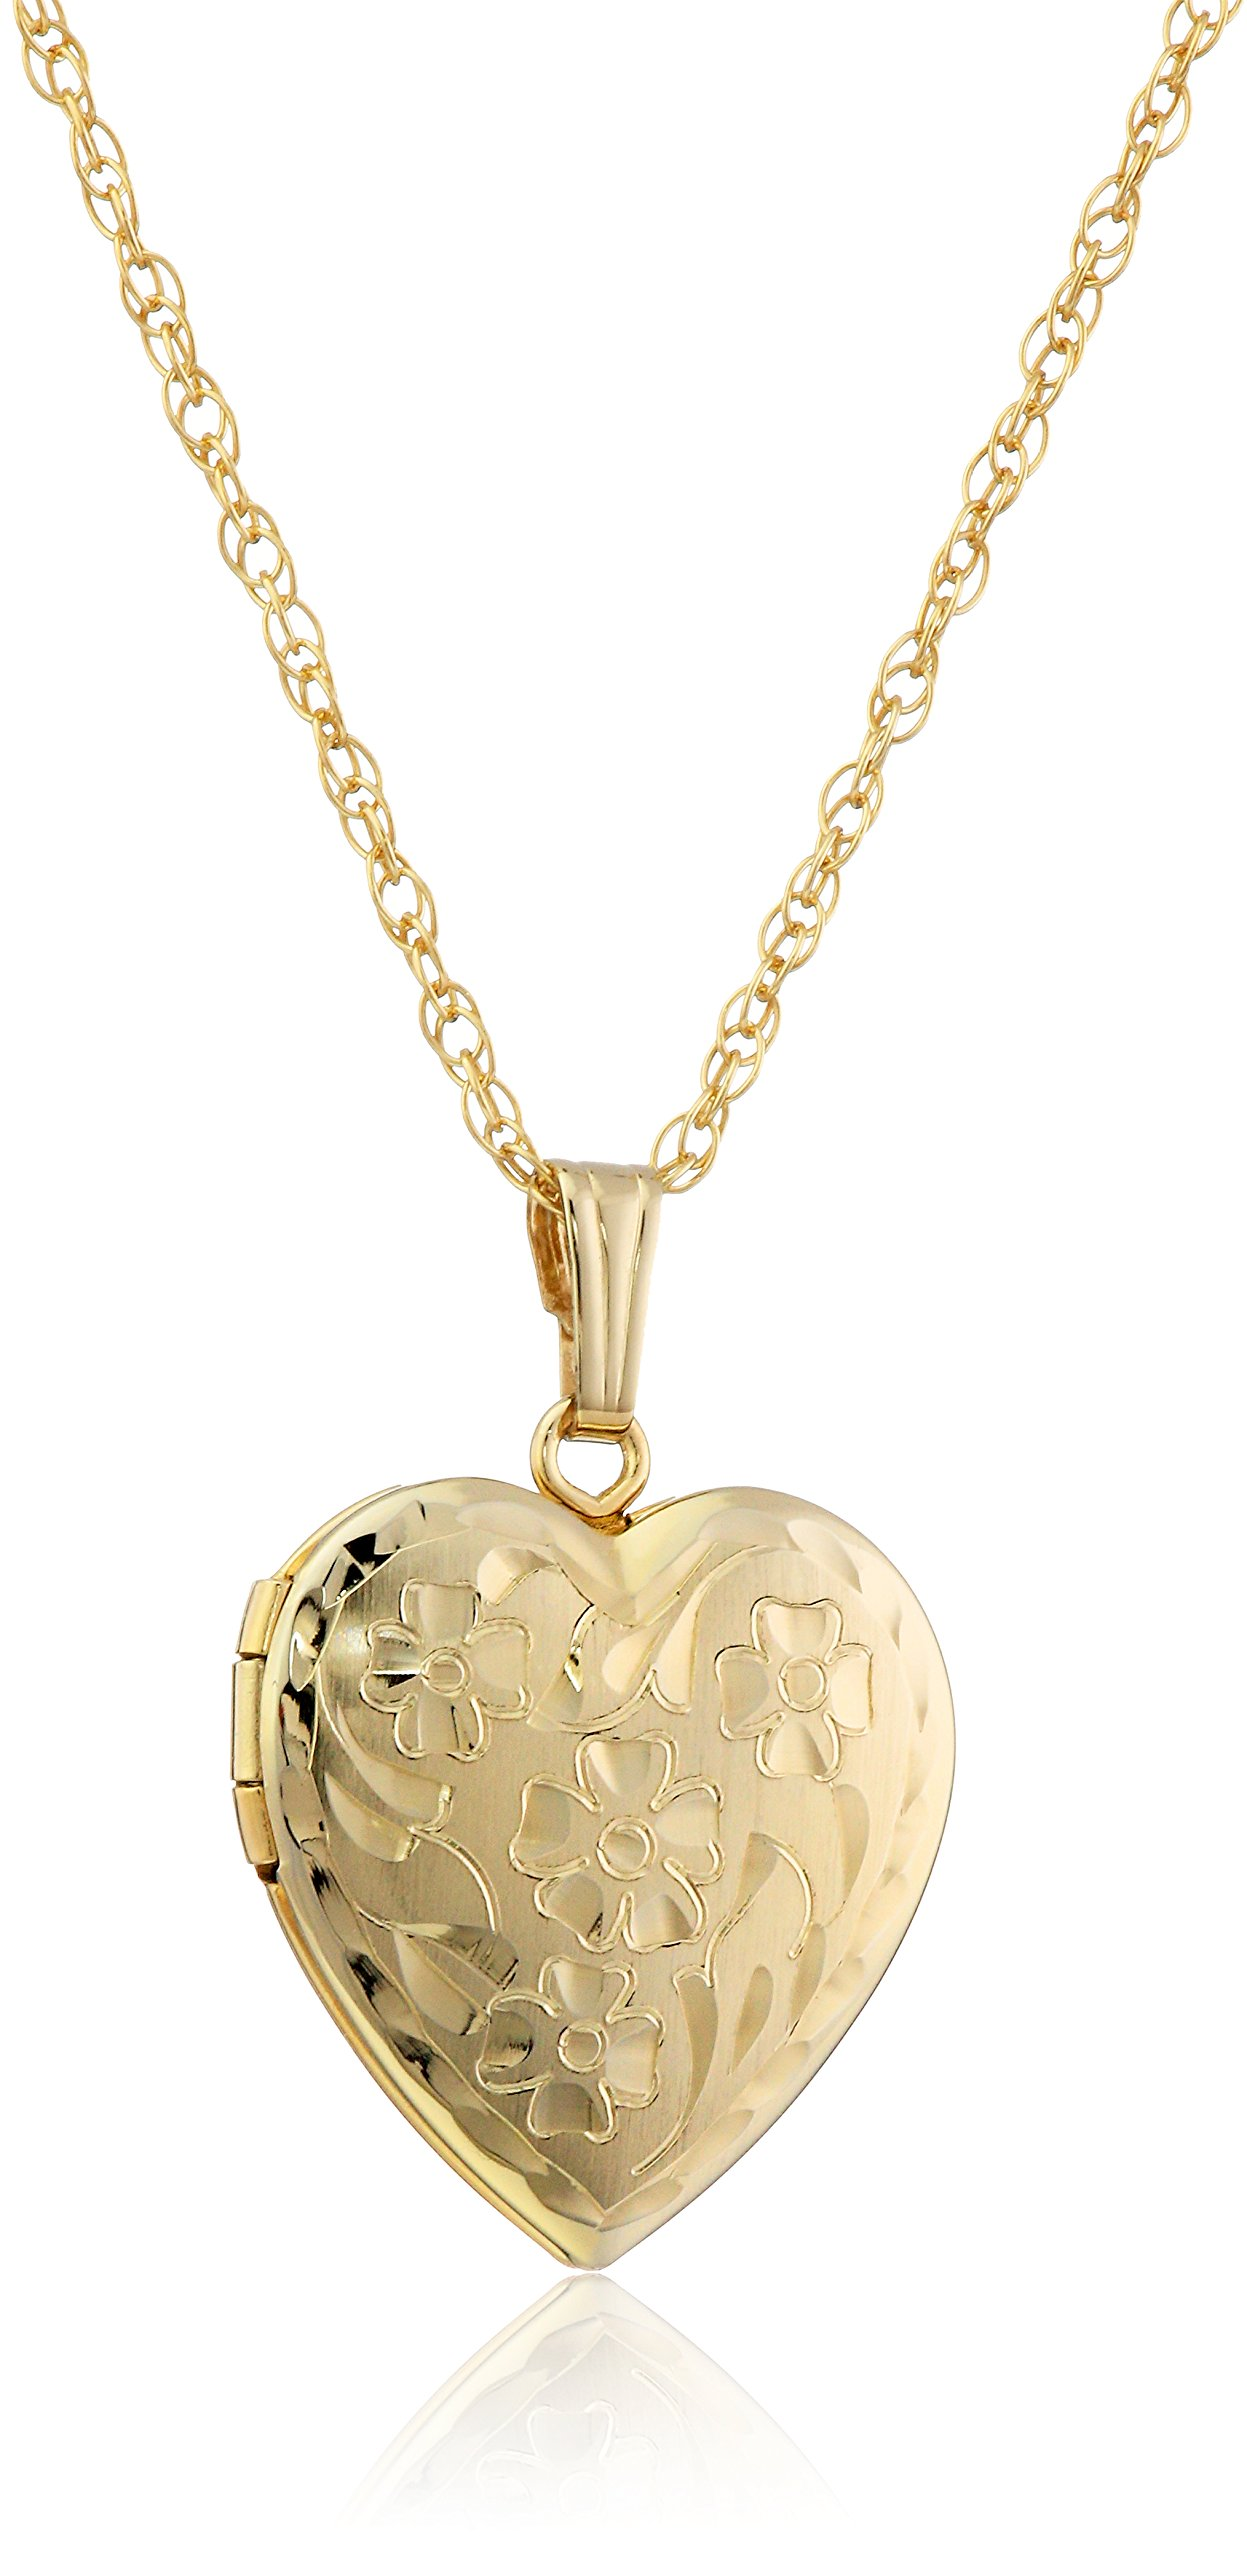 14k Yellow Gold-Filled Engraved Flowers Heart Locket, 18'' by Amazon Collection